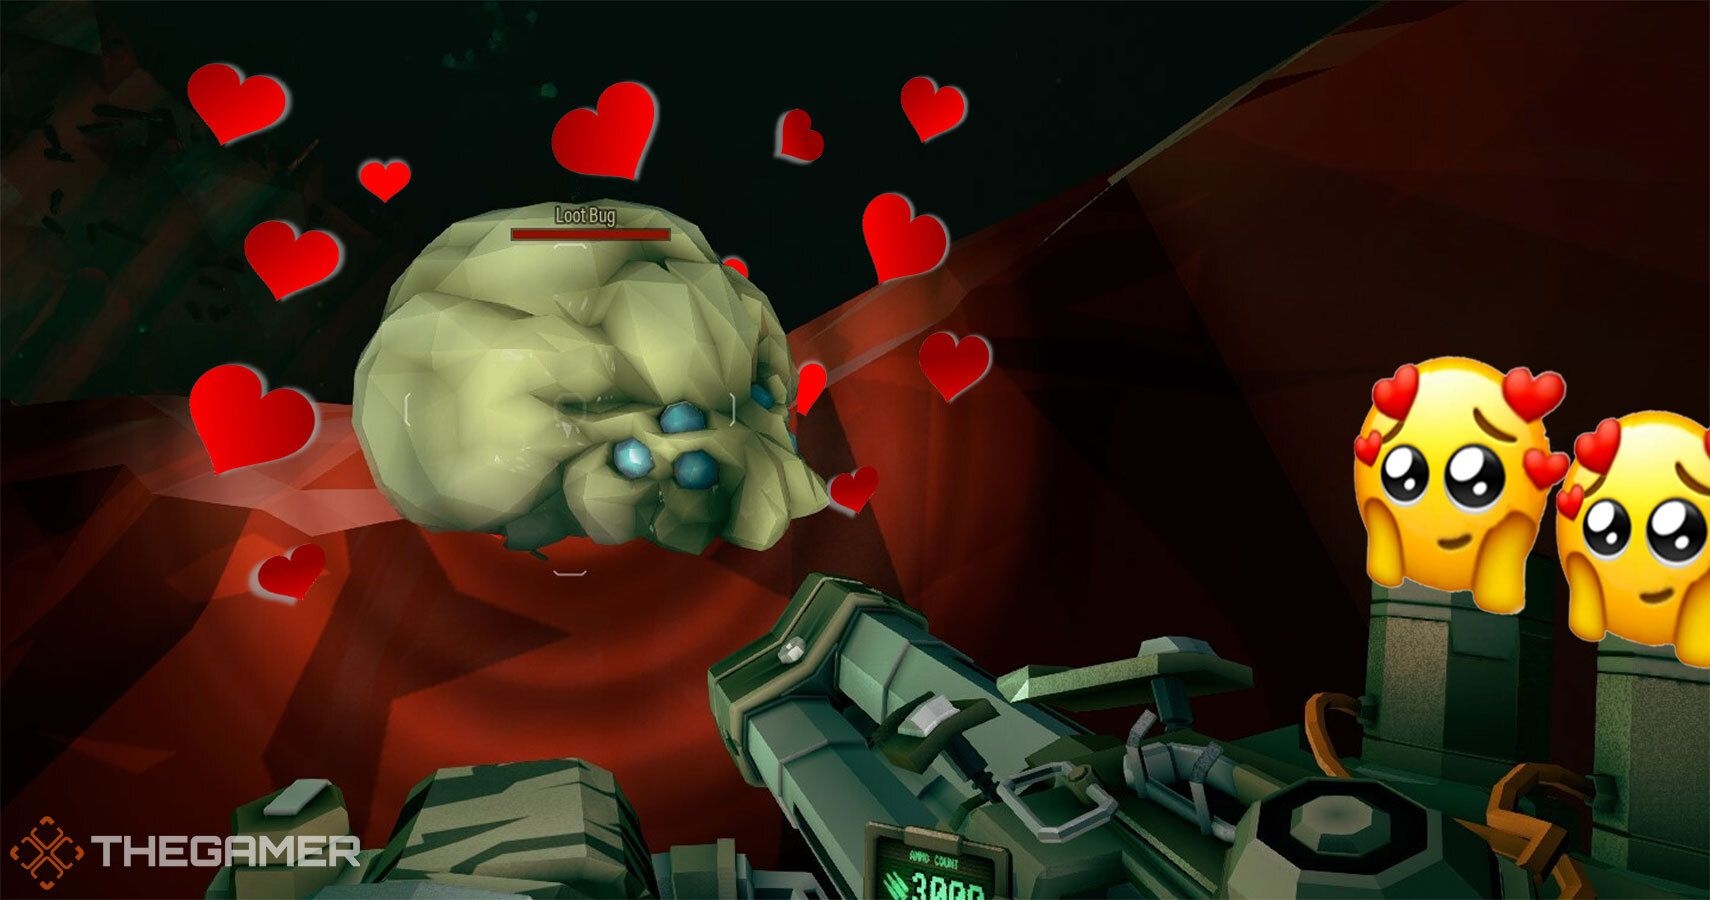 Deep Rock Galactic's Adorably Killable Loot Bug Made Me Fall In Love With The Game